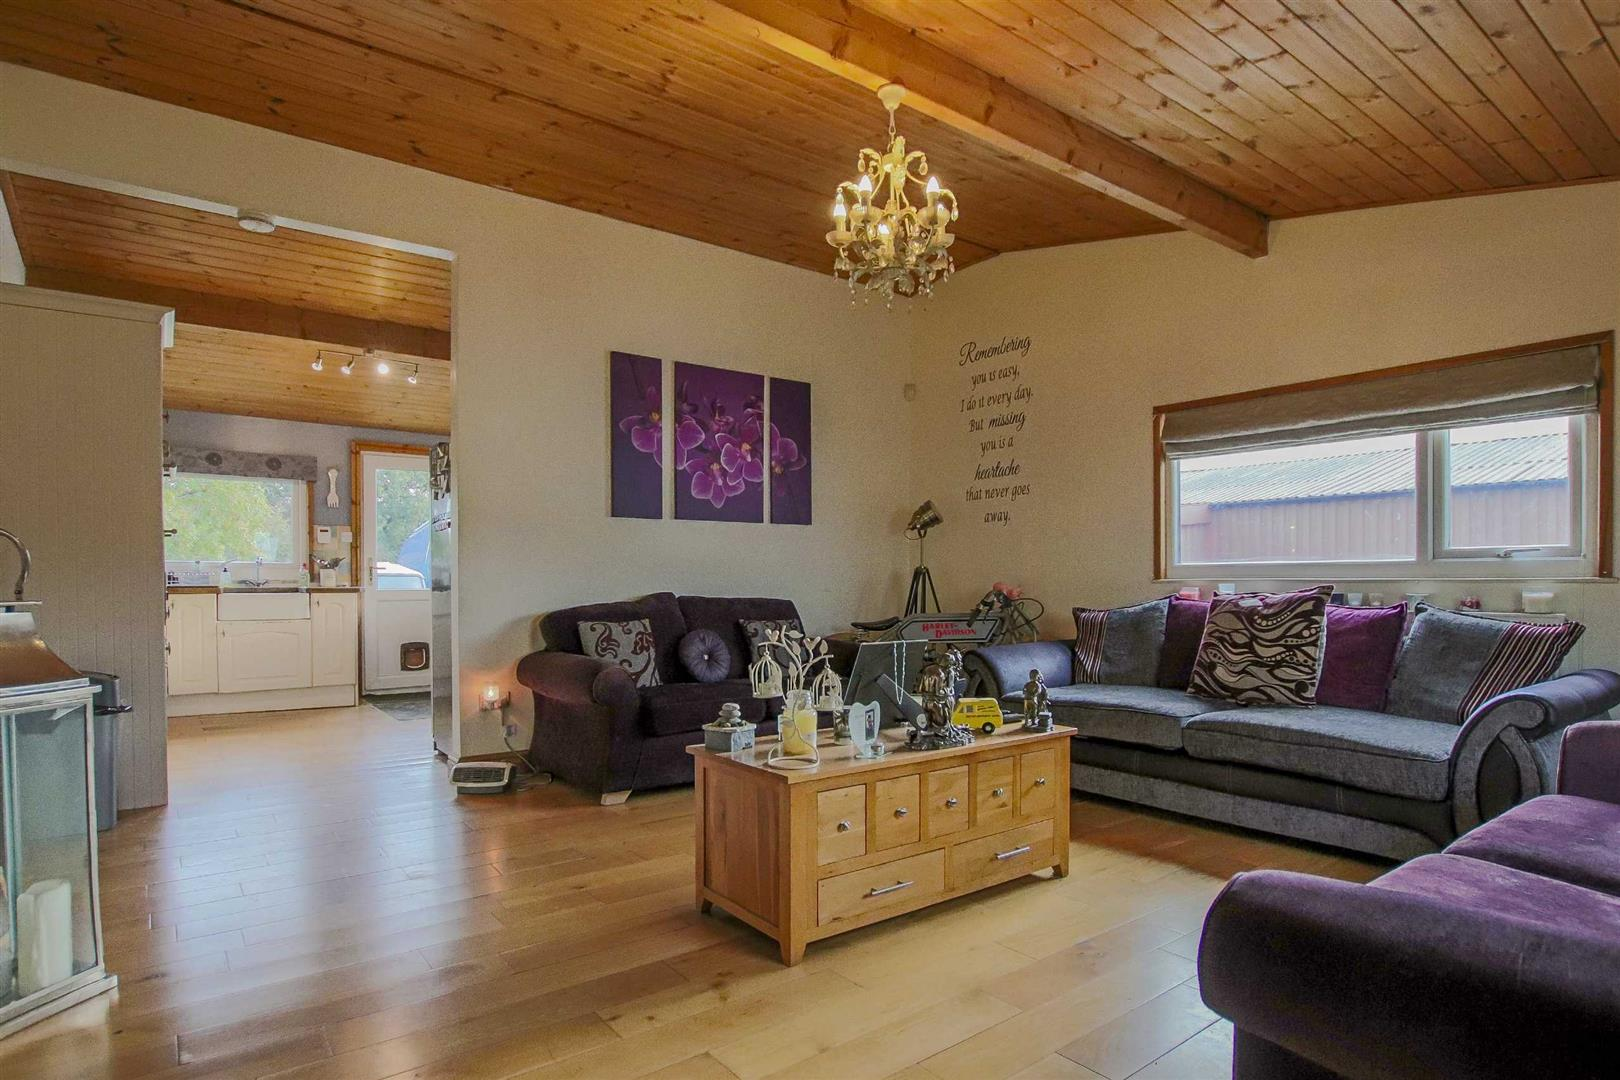 9 Bedroom Barn Conversion For Sale - Image 31